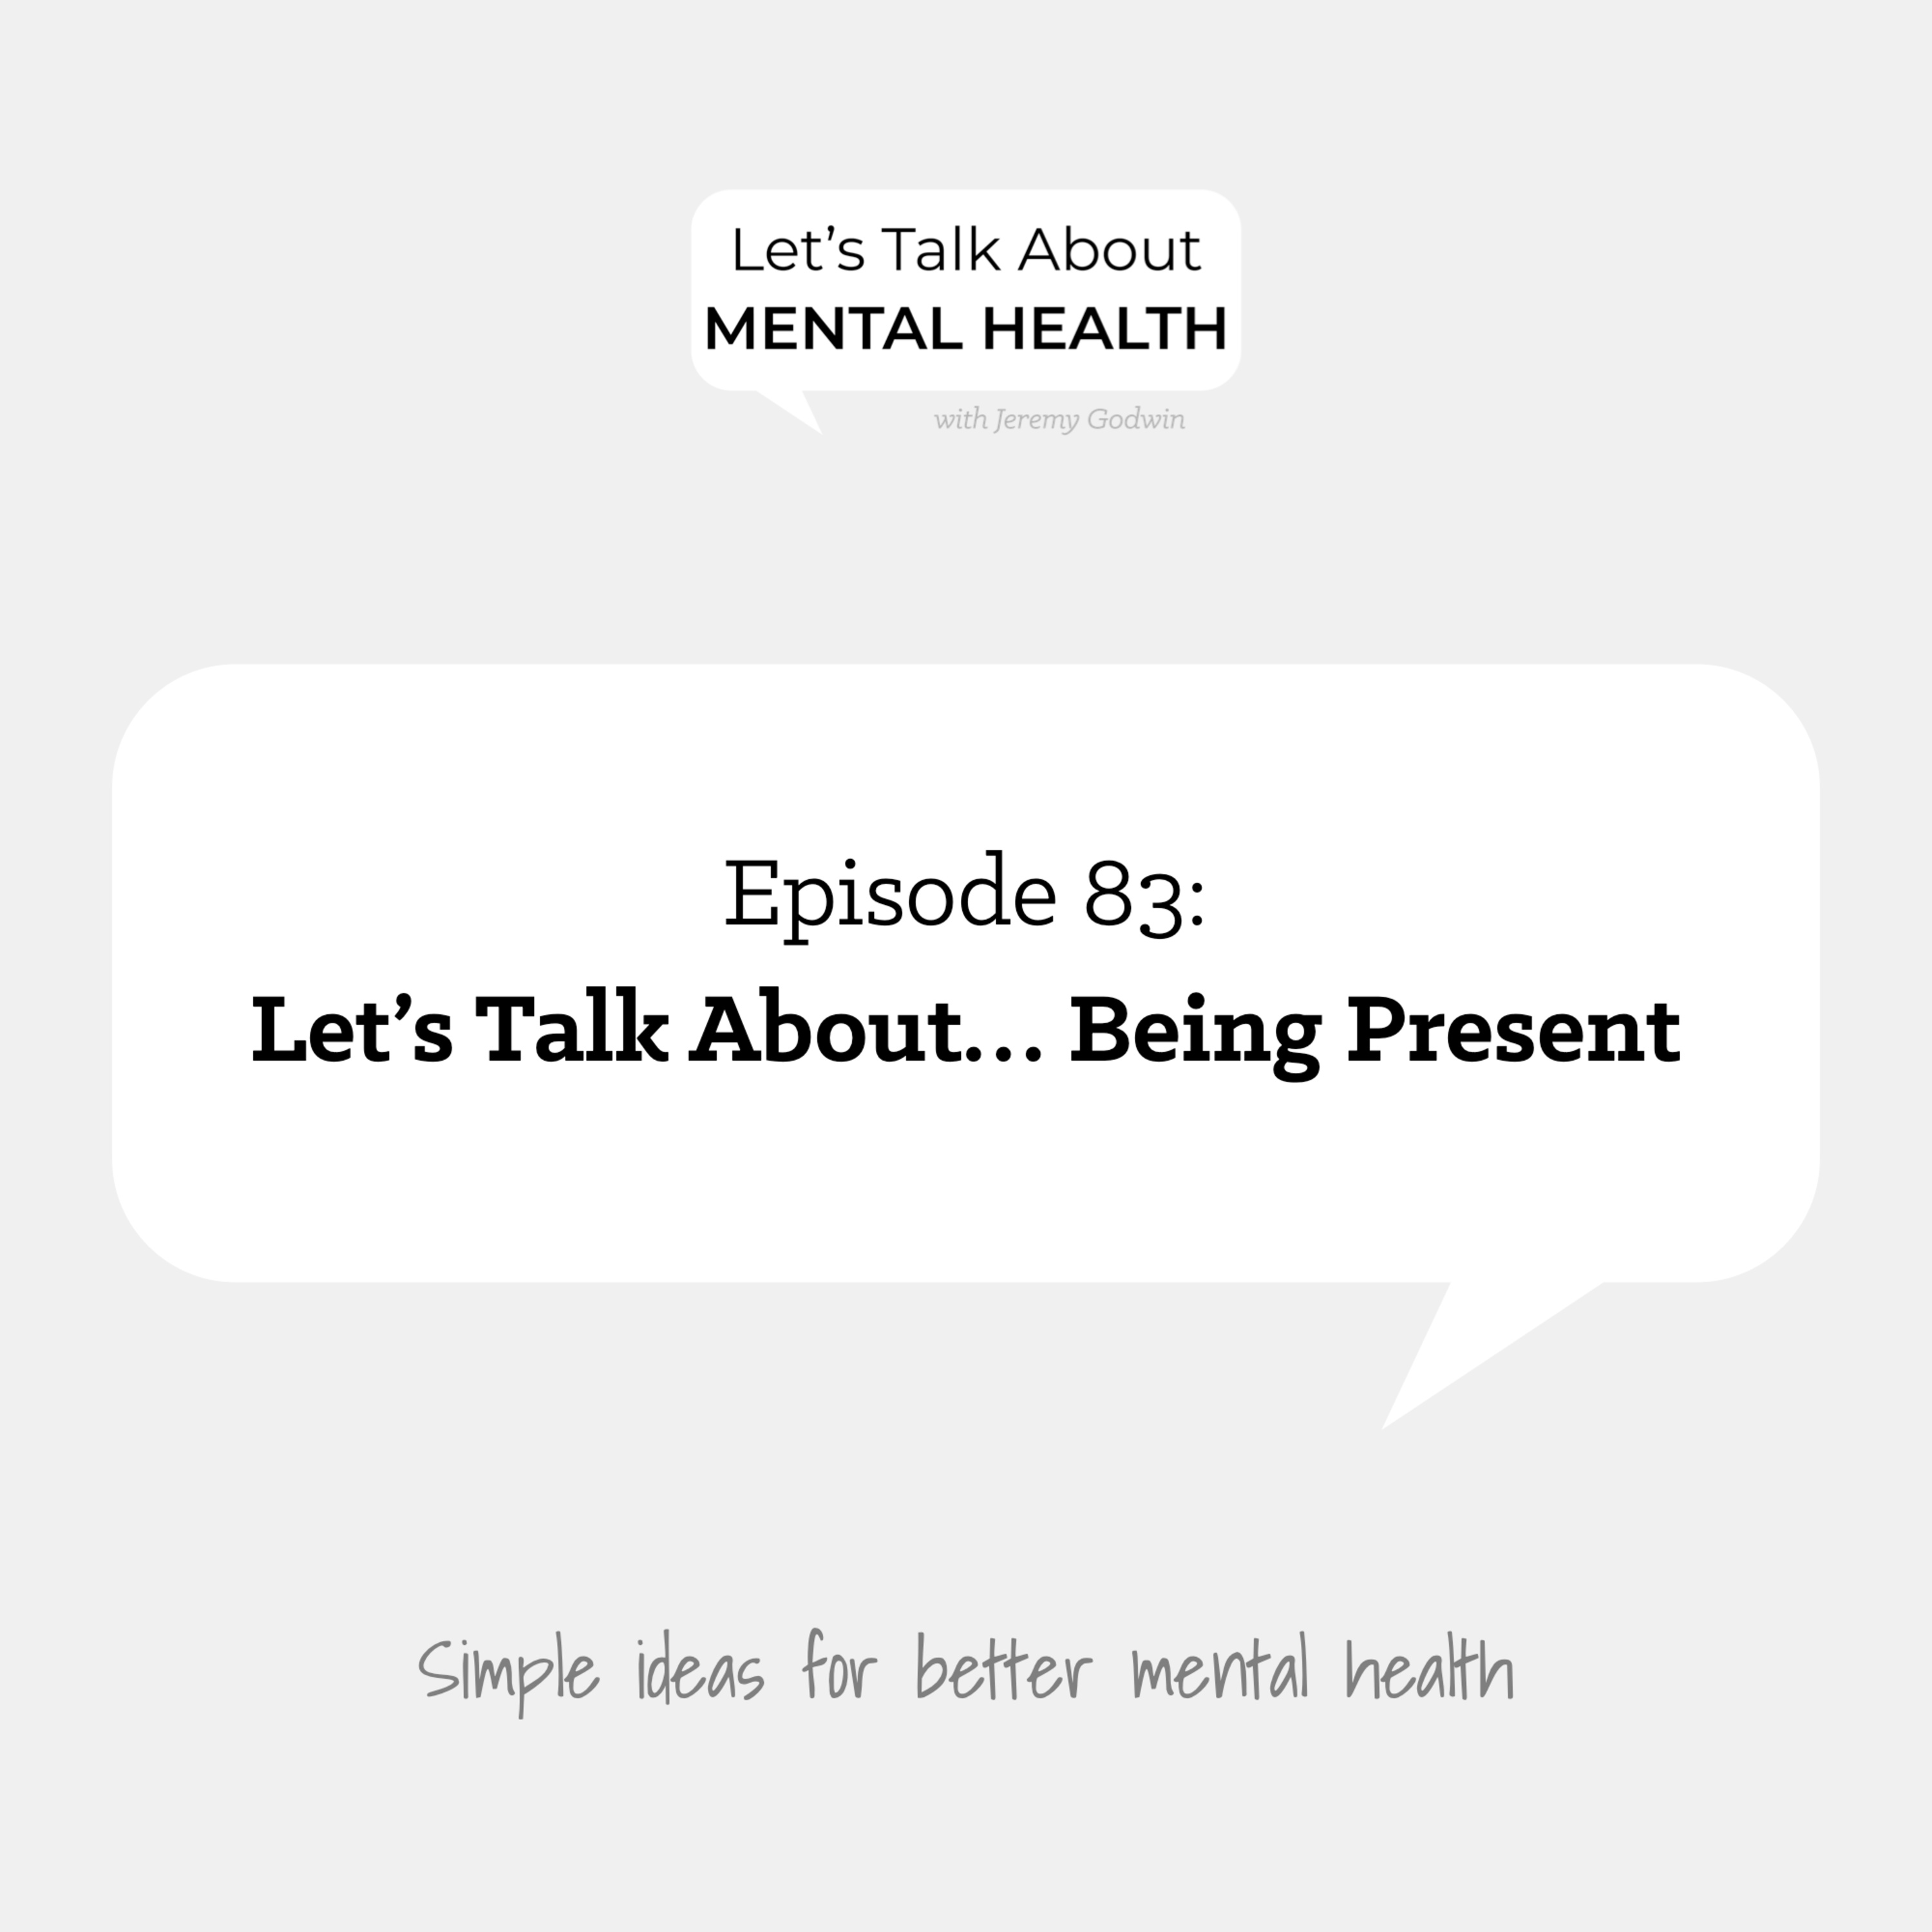 Let's Talk About Mental Health - Let's Talk About... Being Present